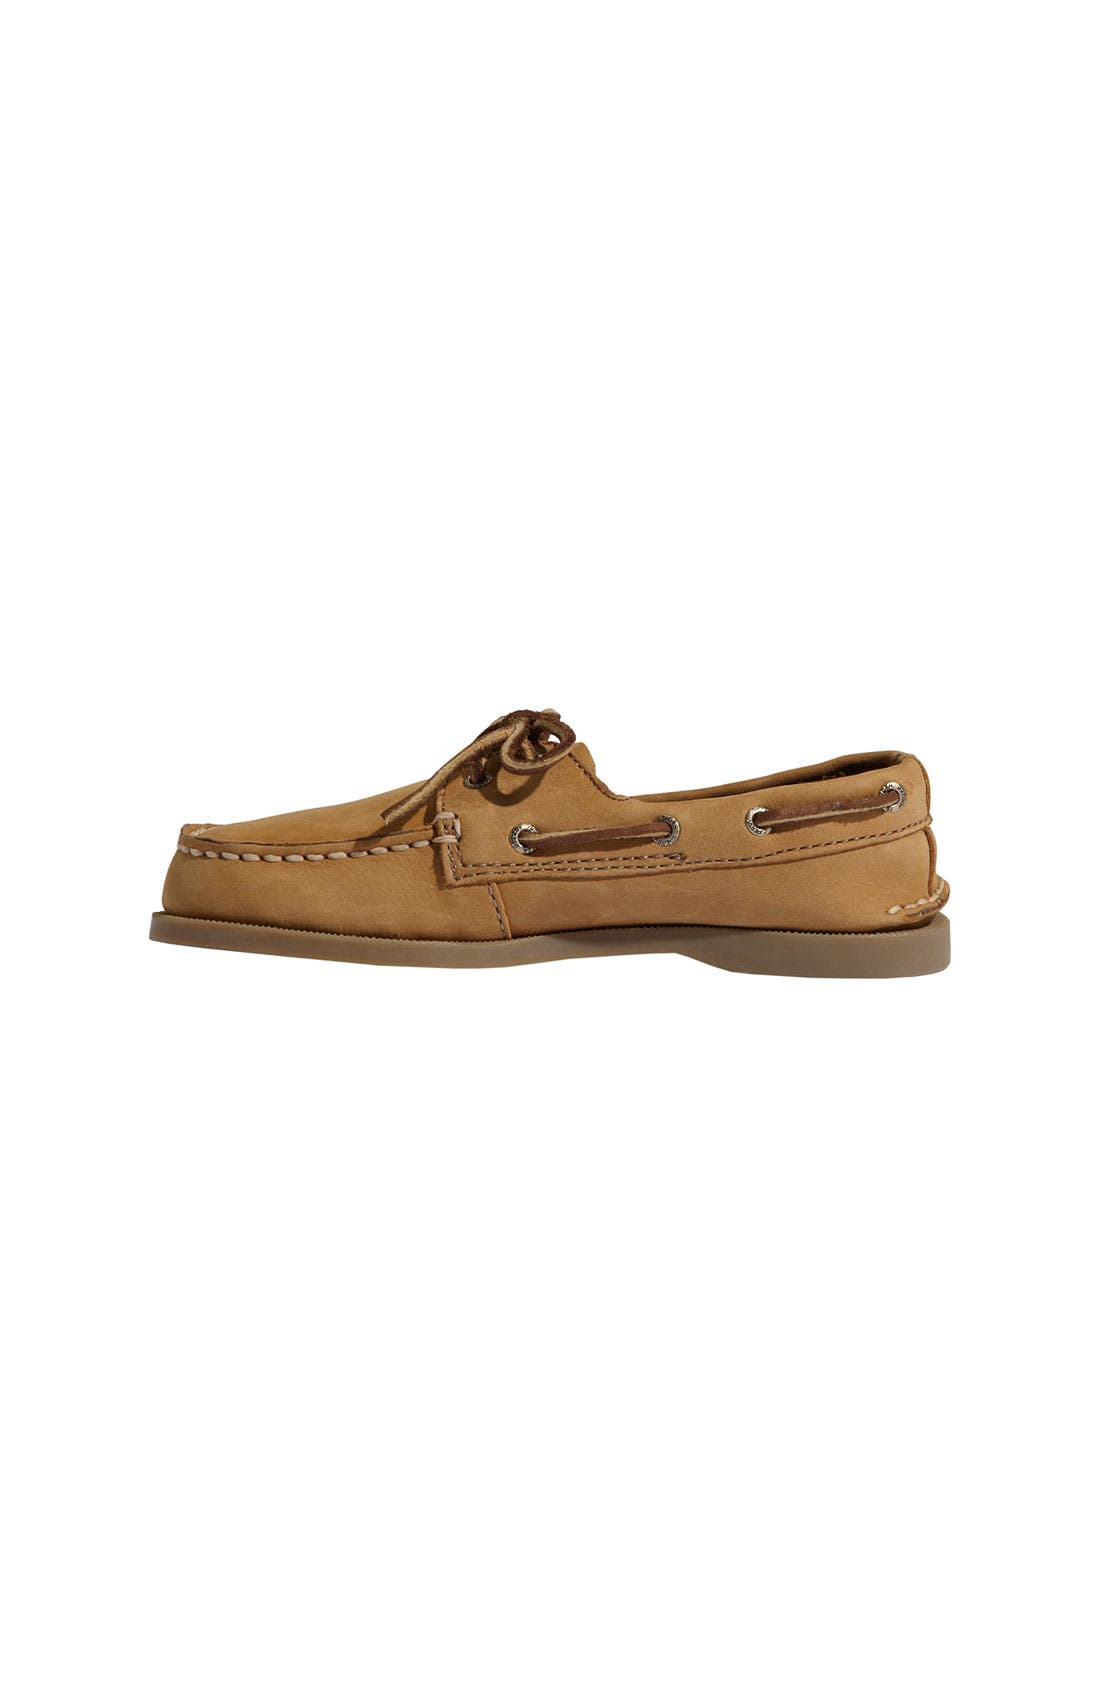 Alternate Image 2  - Sperry Kids 'Authentic Original' Boat Shoe (Walker & Toddler)